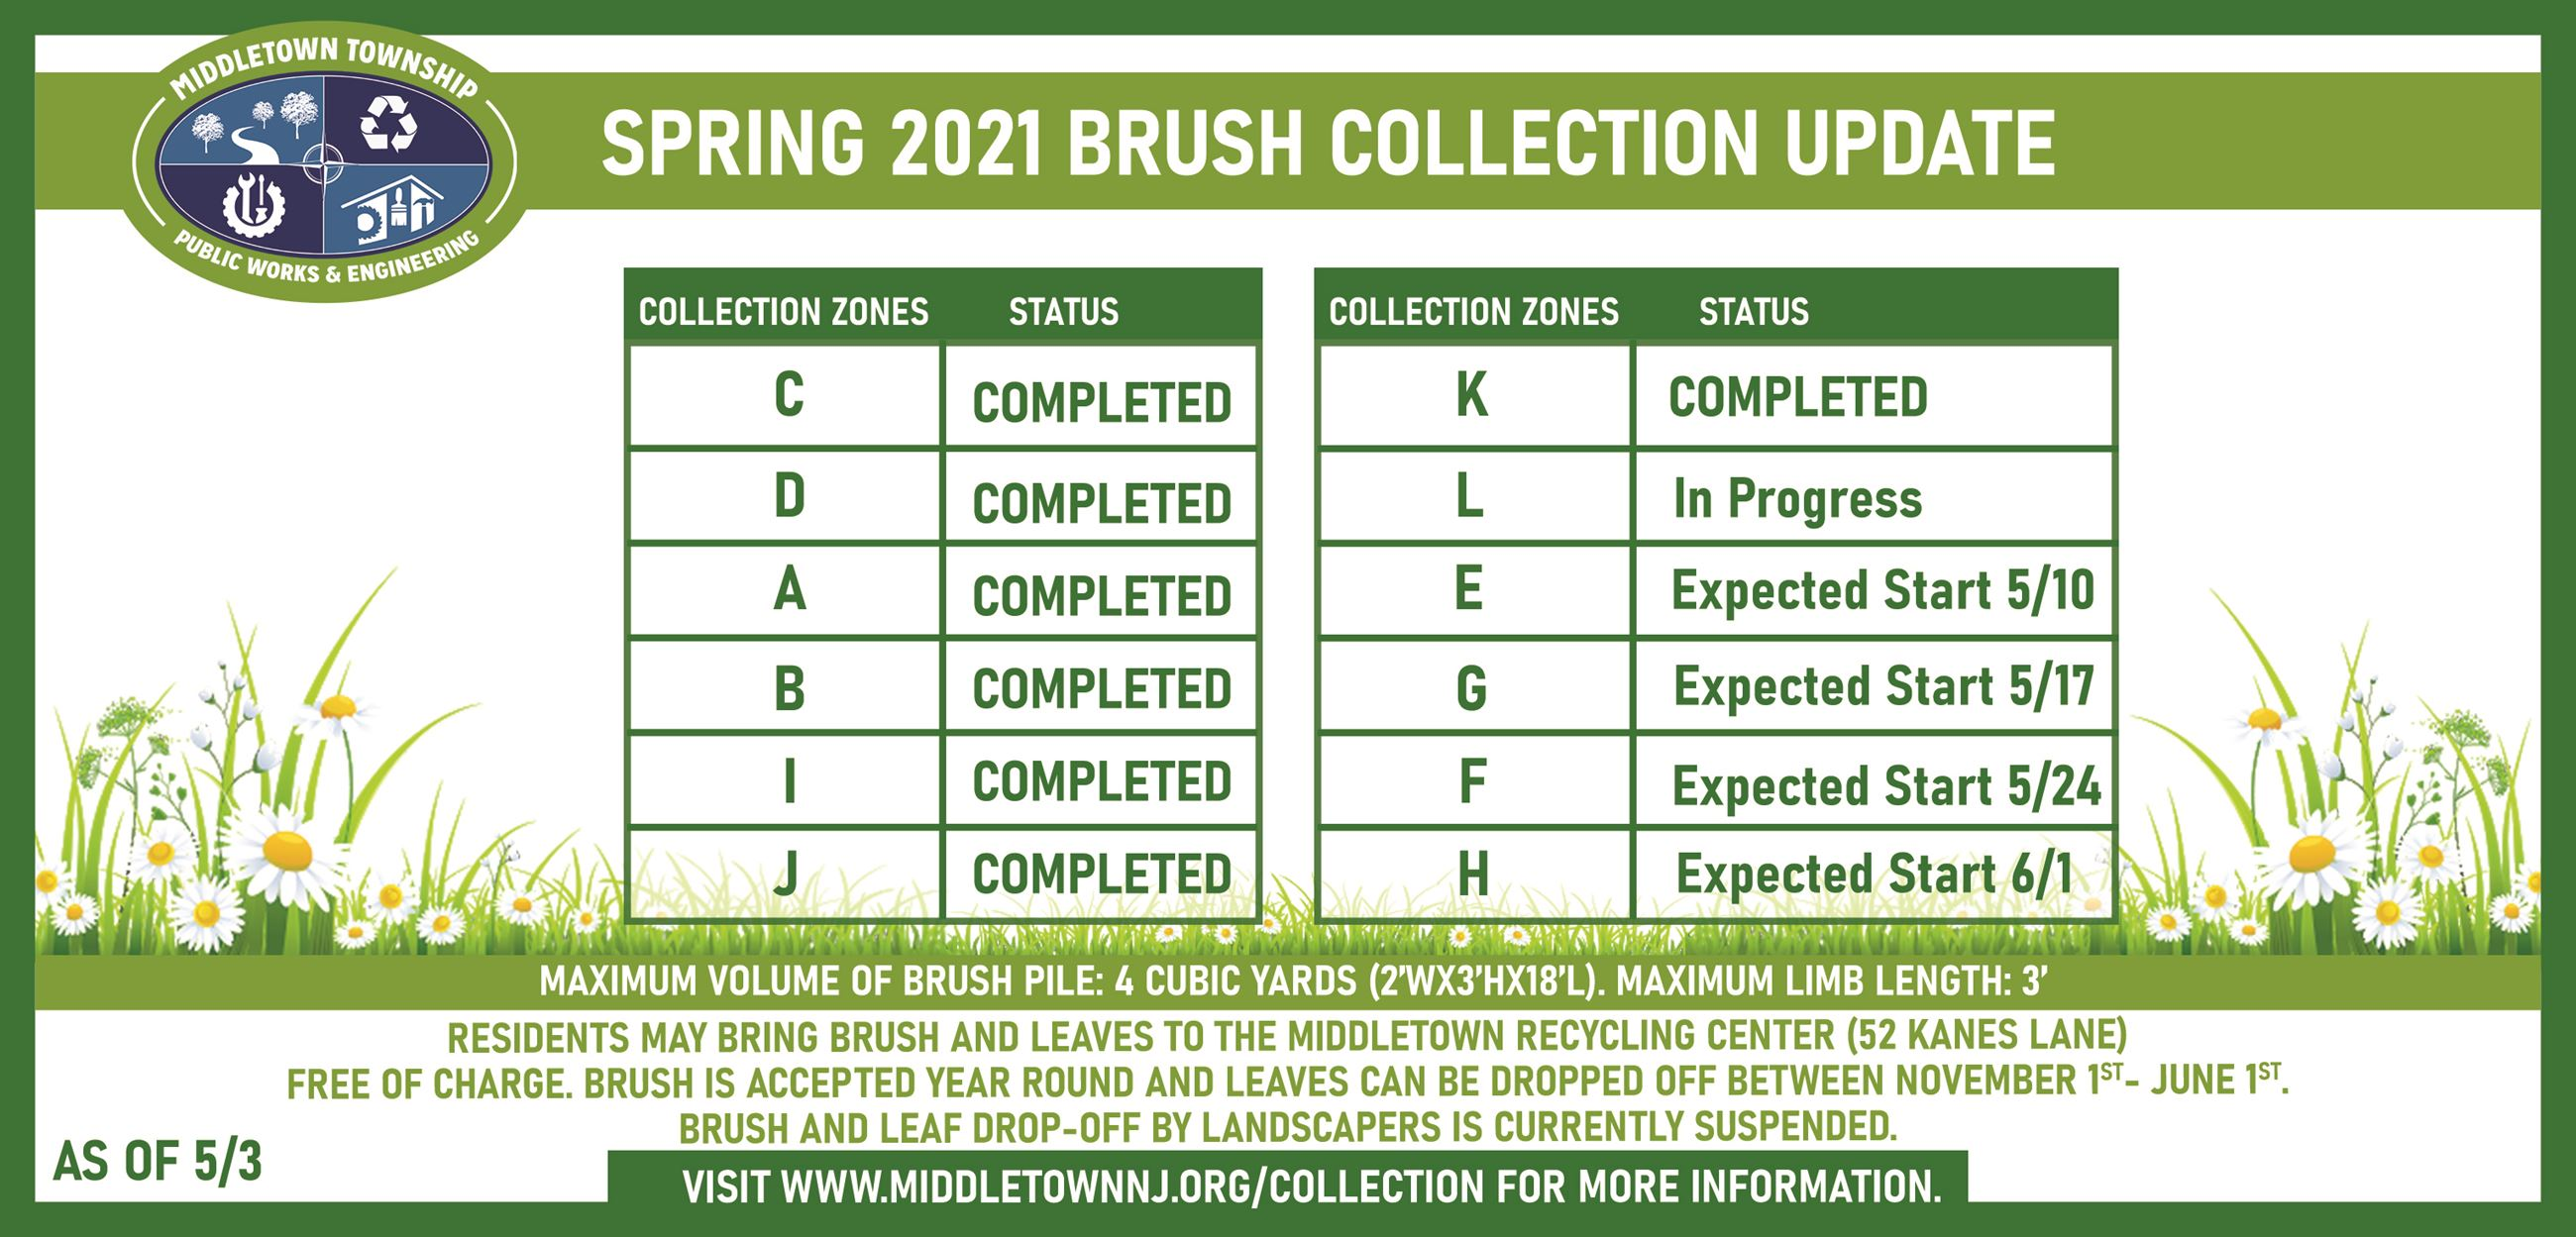 2021 BRUSH COLLECTION UPDATE 5321